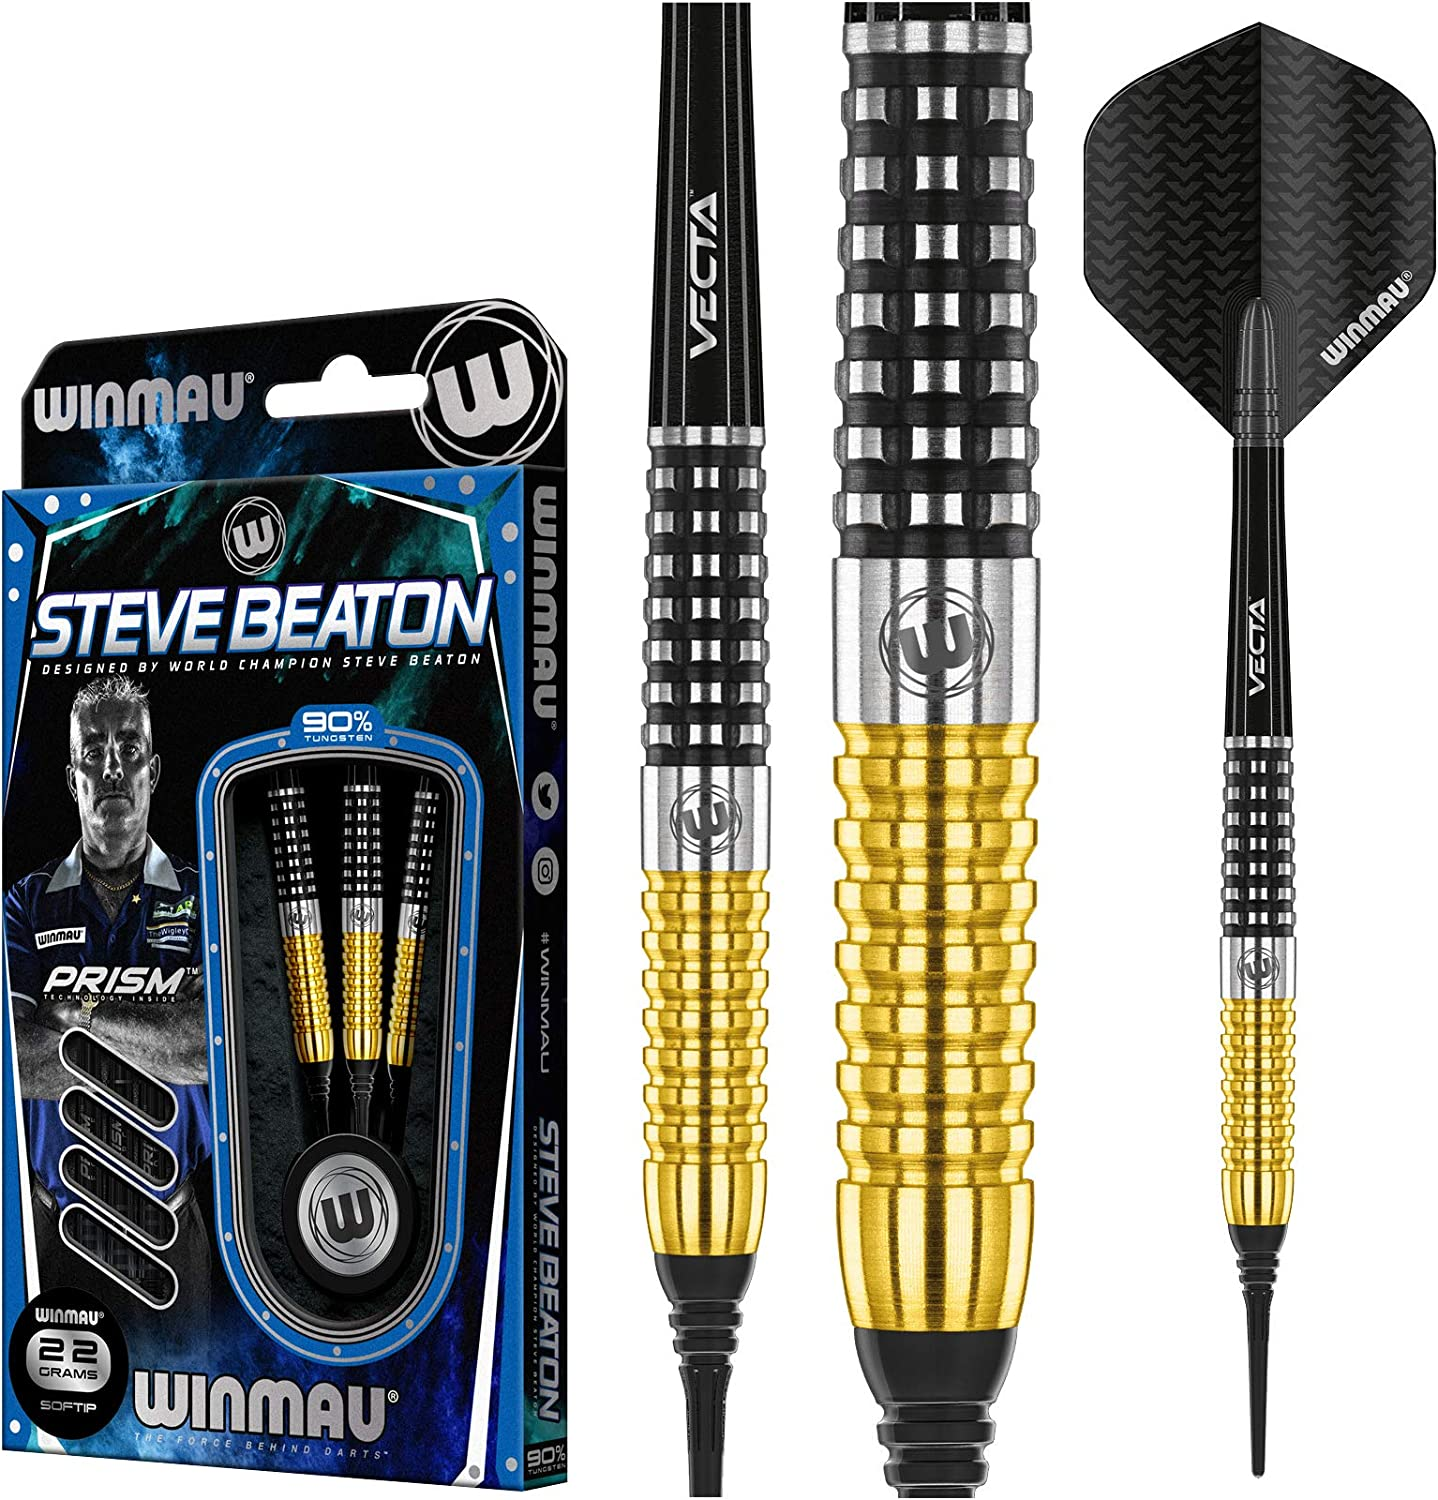 WINMAU Steve Beaton Special Edition 20 Gram Tungsten Softip Darts Set with Prism Flights and Vecta Shafts Stems